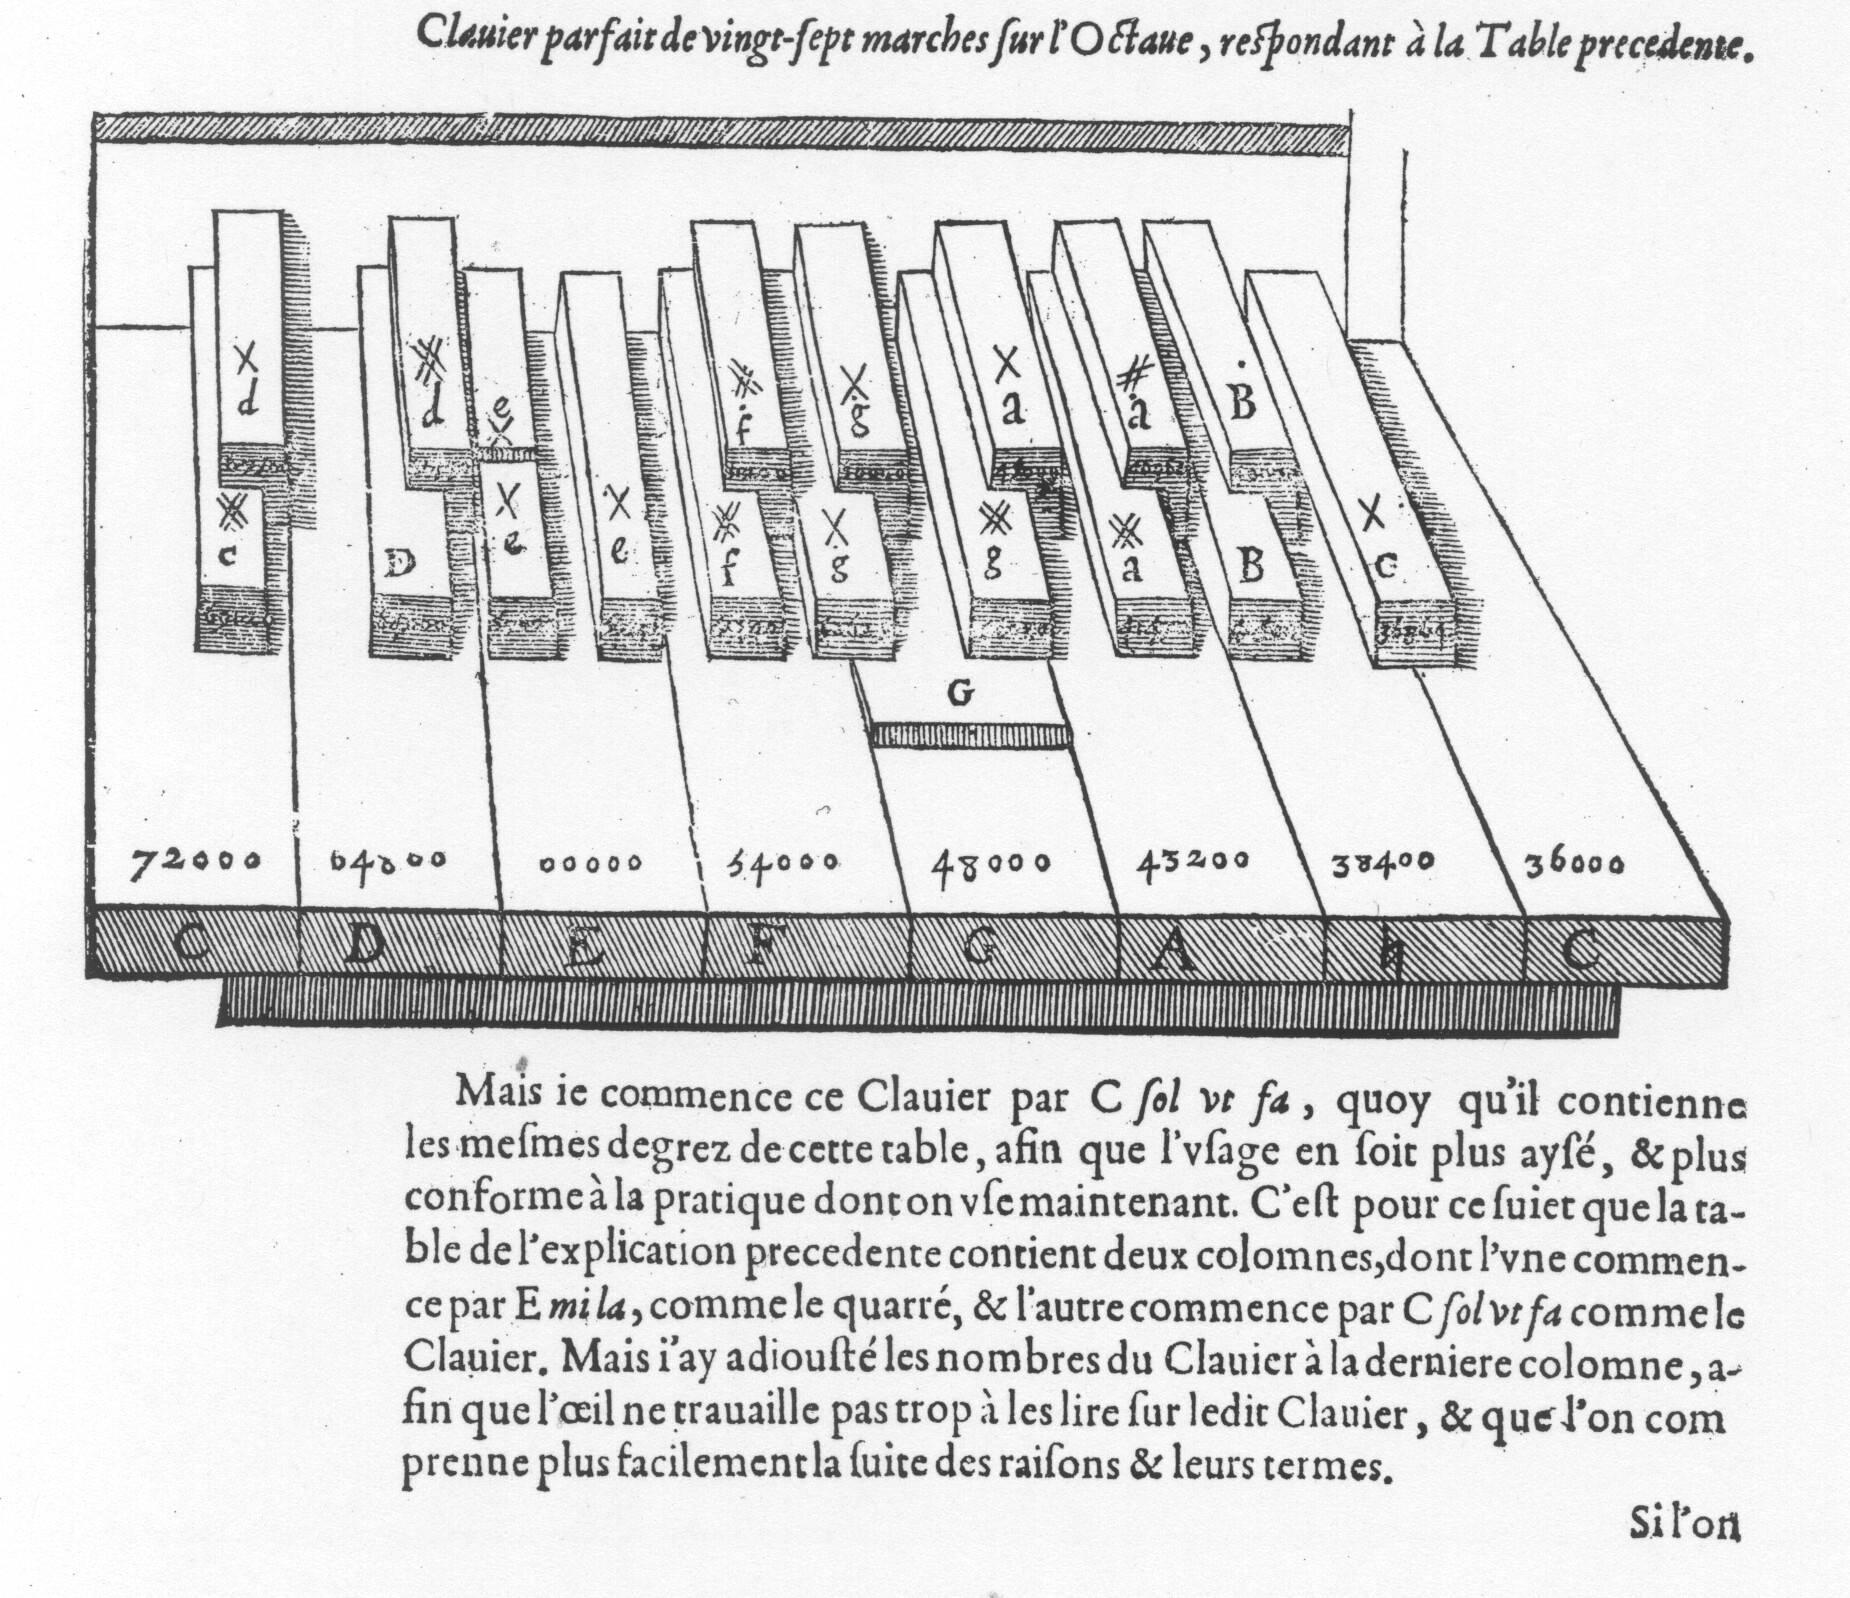 Twenty-seven-key organ clavier invented by Mersenne, depicted in the Harmonie universelle.